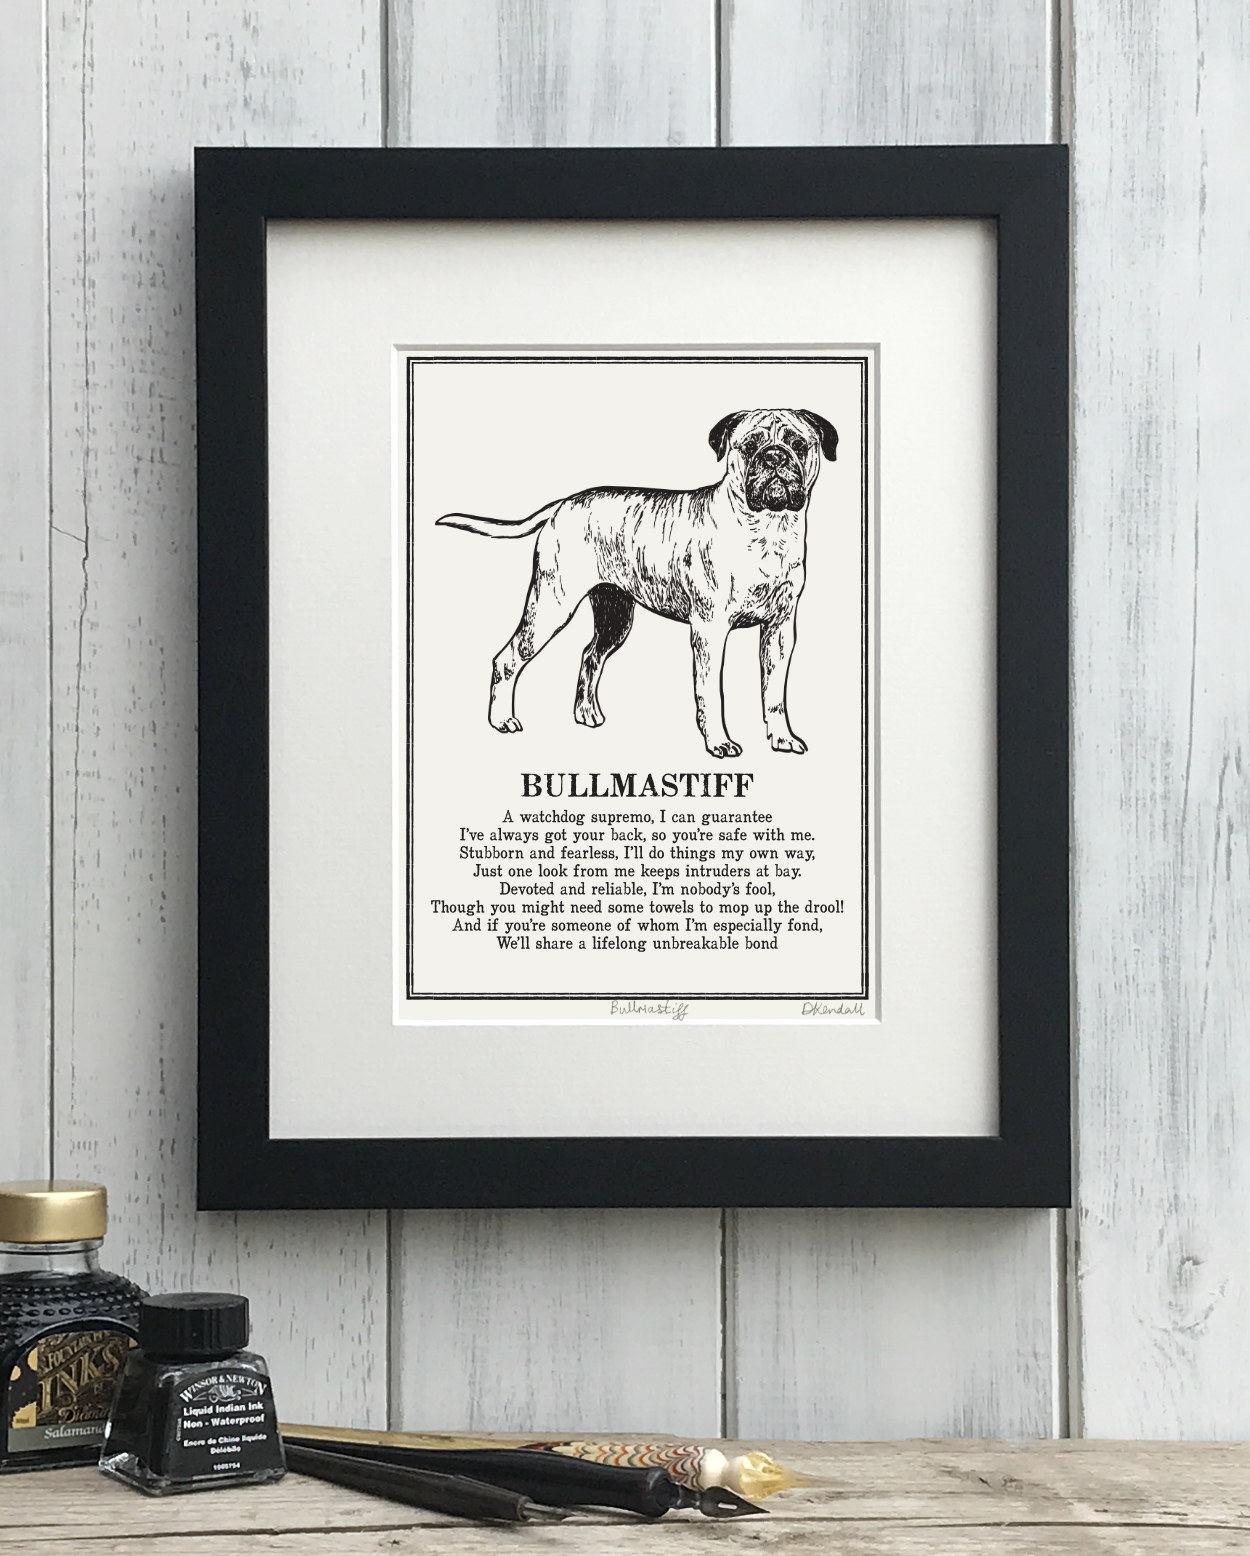 Bullmastiff Doggerel Illustrated Poem Art Print | The Enlightened Hound